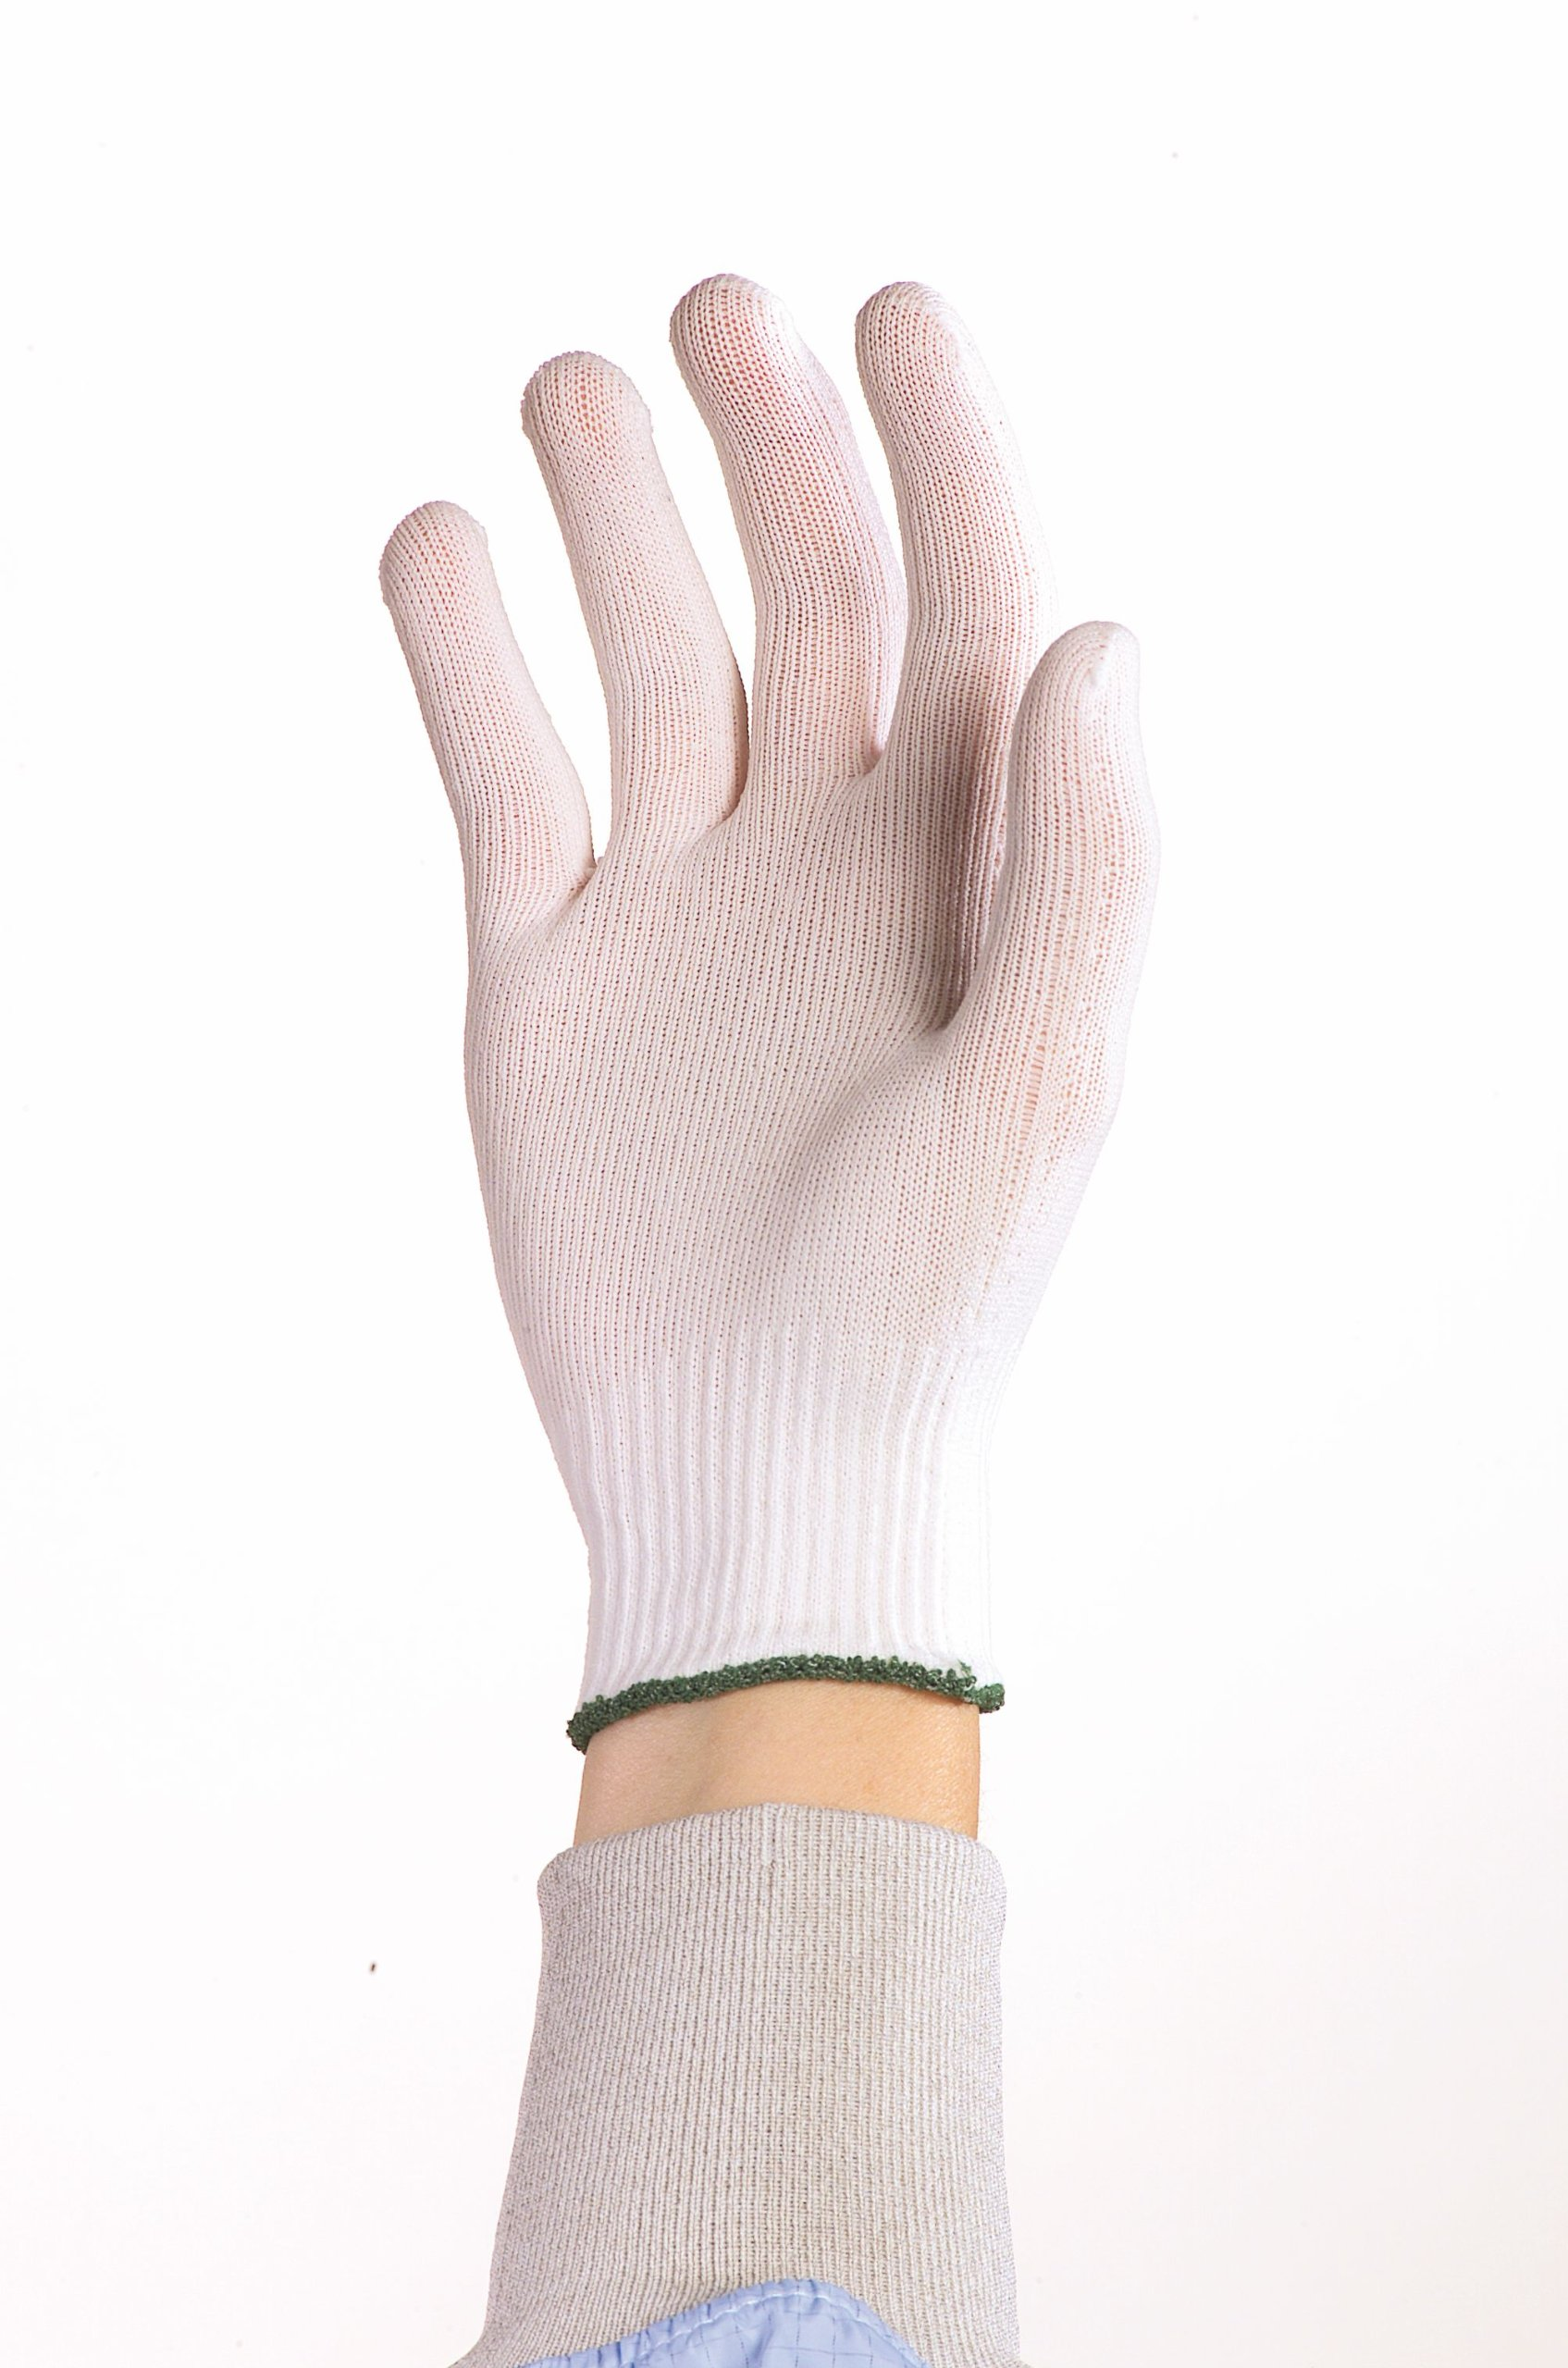 Berkshire BCR Polyester Full-Finger Glove Liners, Large Size (Case of 20 Packs)